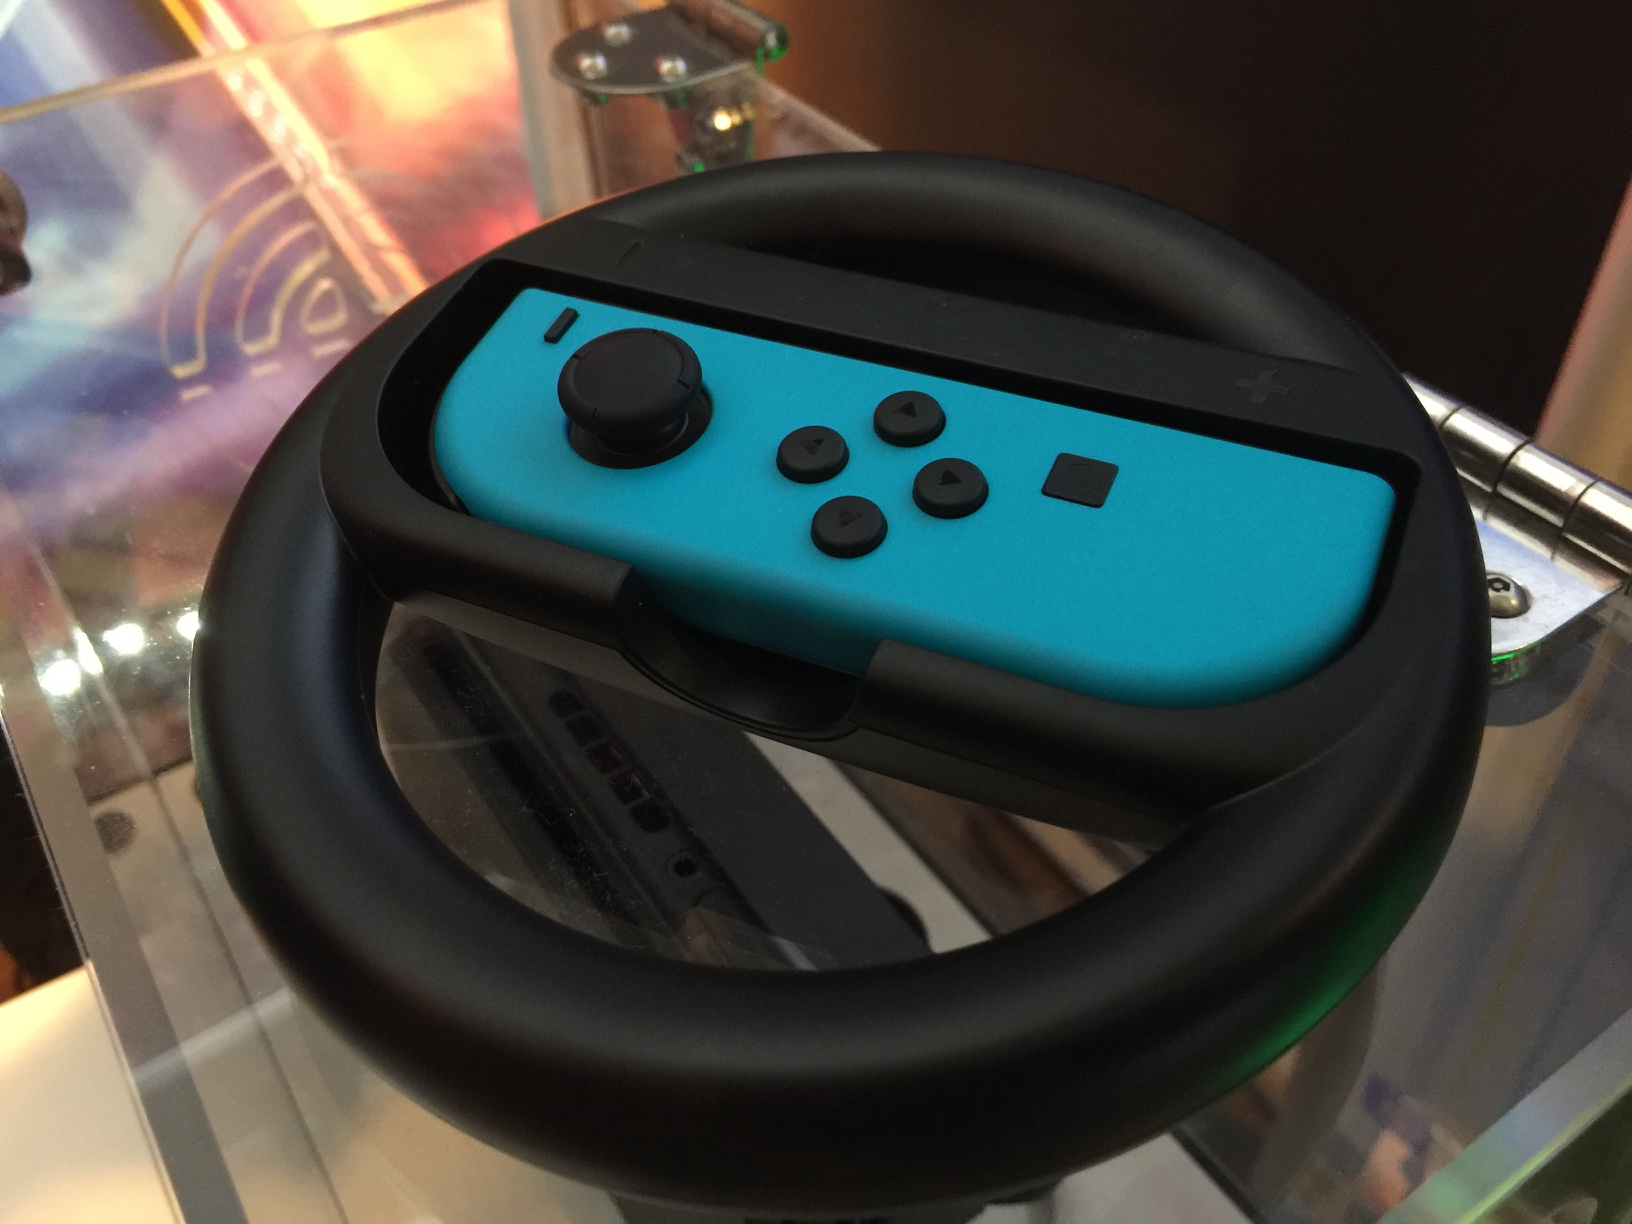 Steering Wheel Accessory Coming To Switch Used For Mario